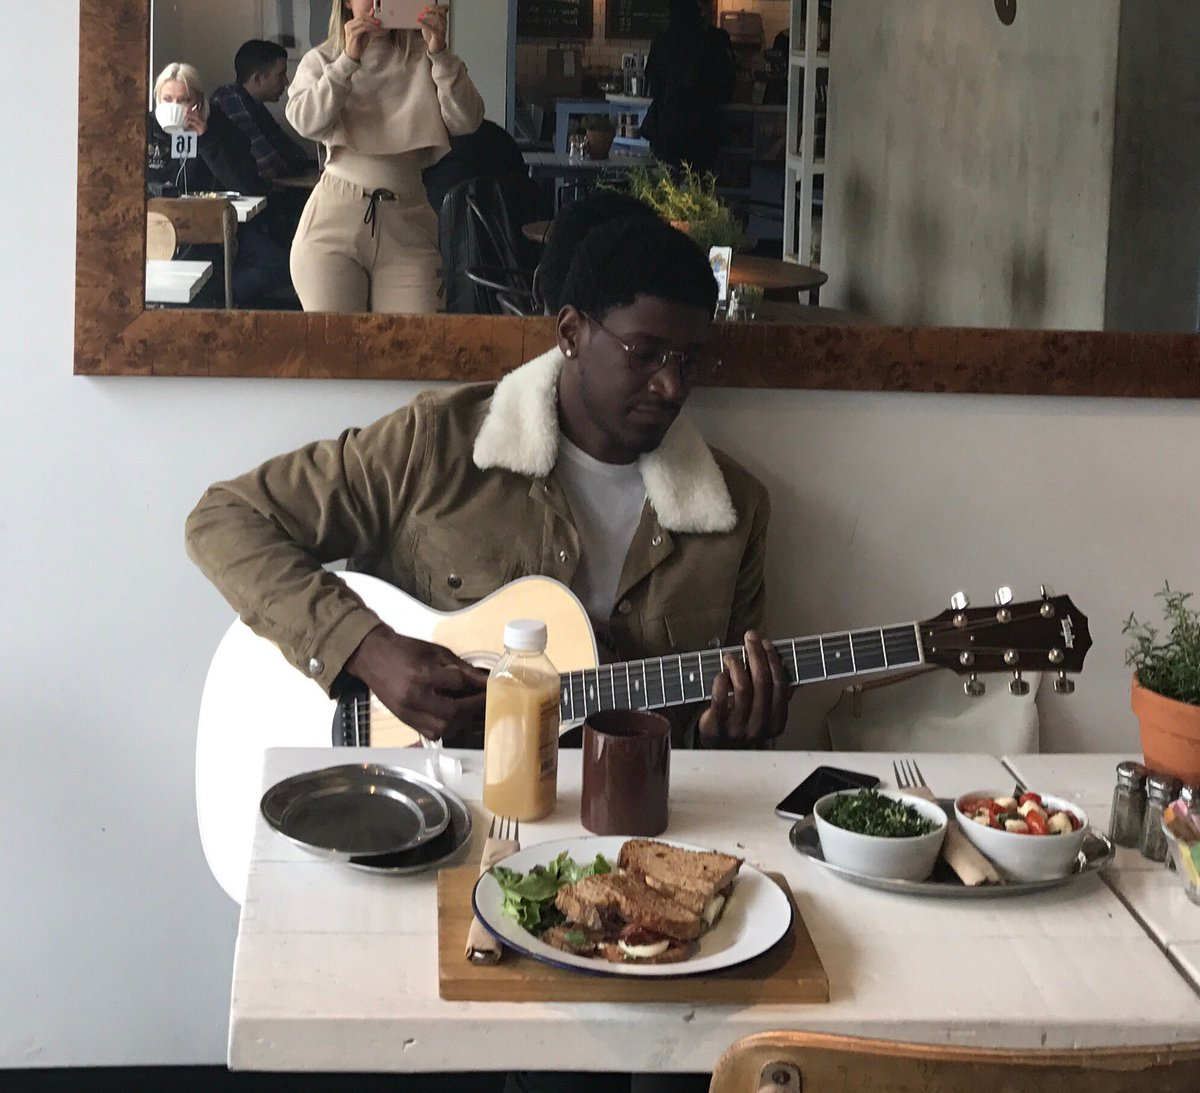 working with the extraordinary @labrinth is like a relaxing meal at a hipster cafe